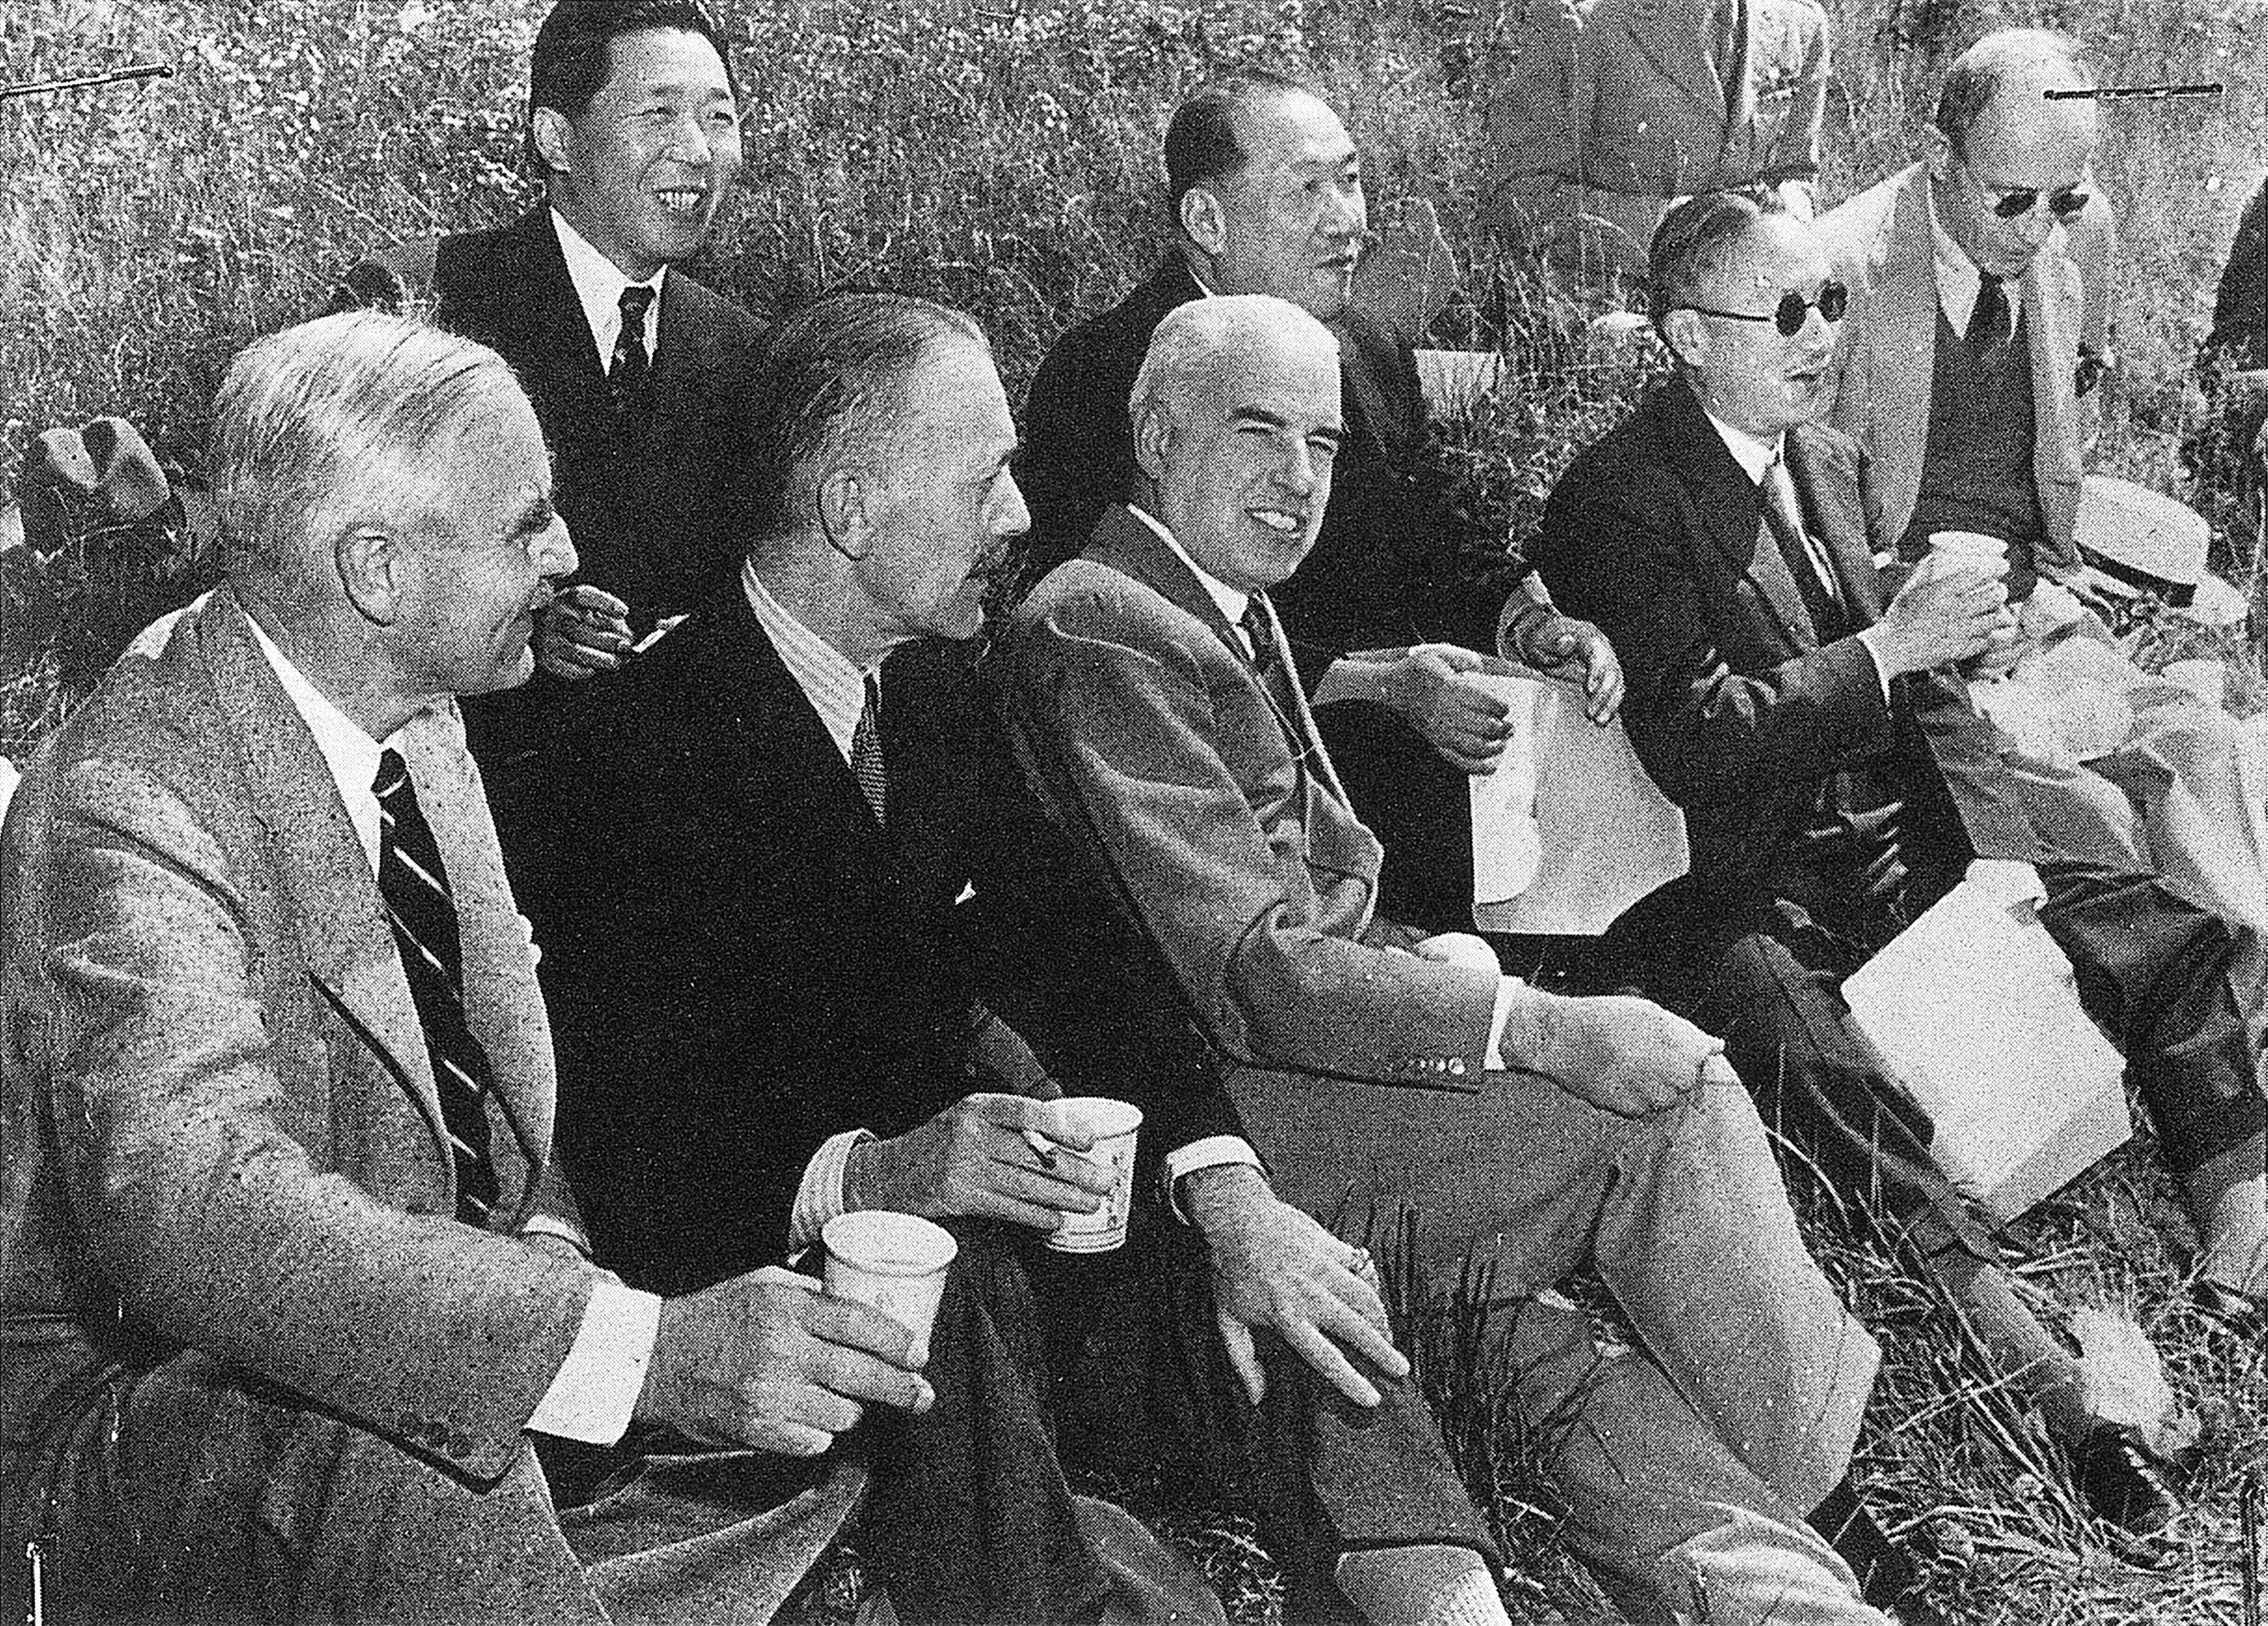 Members of the American, British, and Chinese delegations visit the Virginia countryside